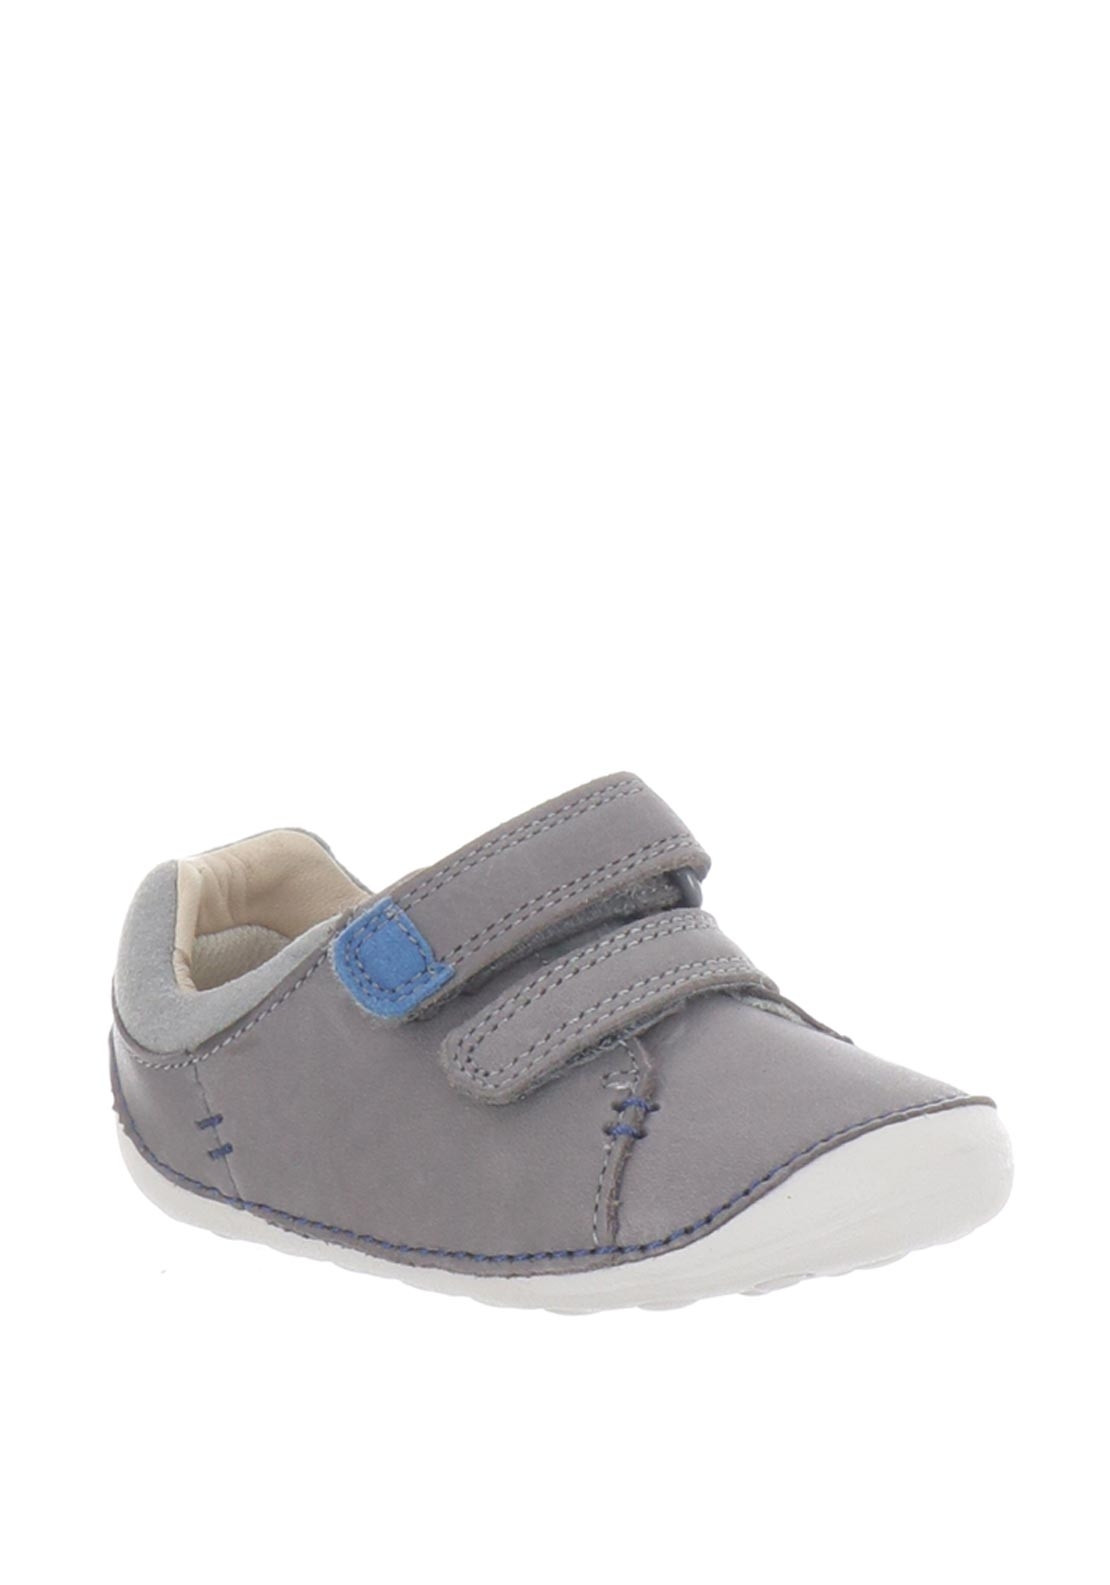 c1bf4040 Clarks Baby Boys Tiny Toby Leather Pre-Walking Shoes, Grey